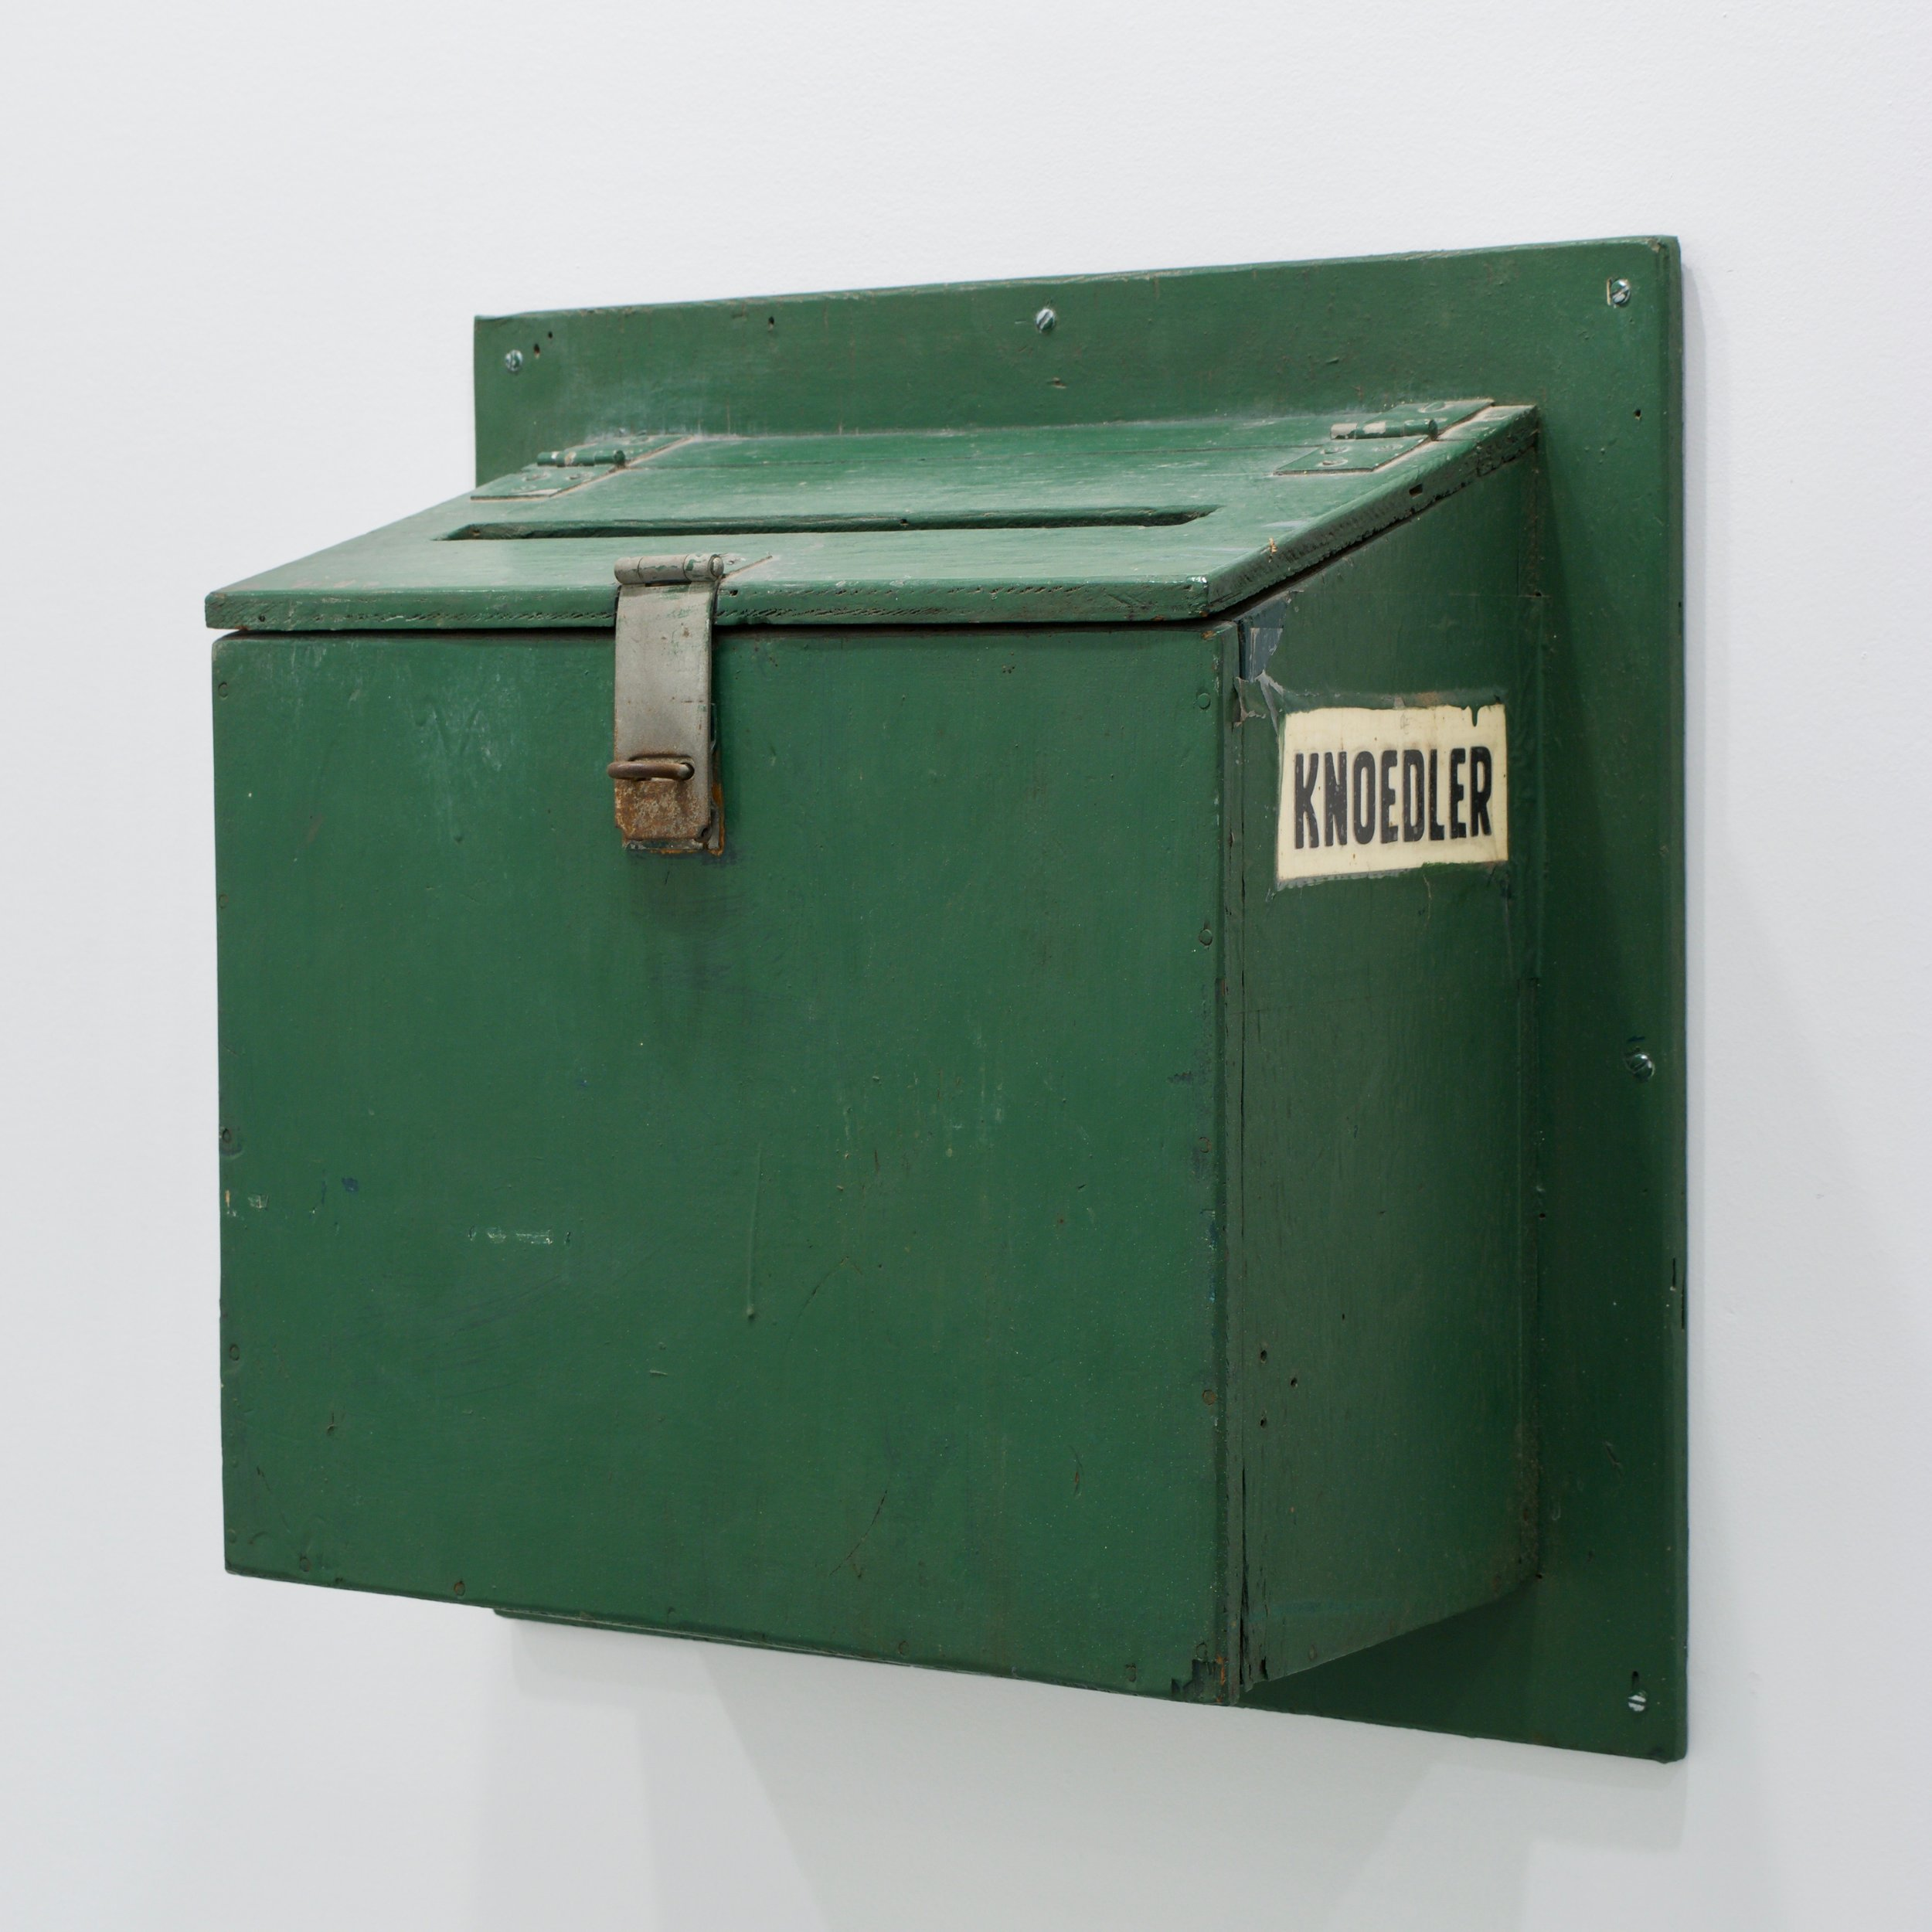 "Nick DePirro, ""Knoedler"", 2017. Painted wood, lock, paper. 20x20x9 in."